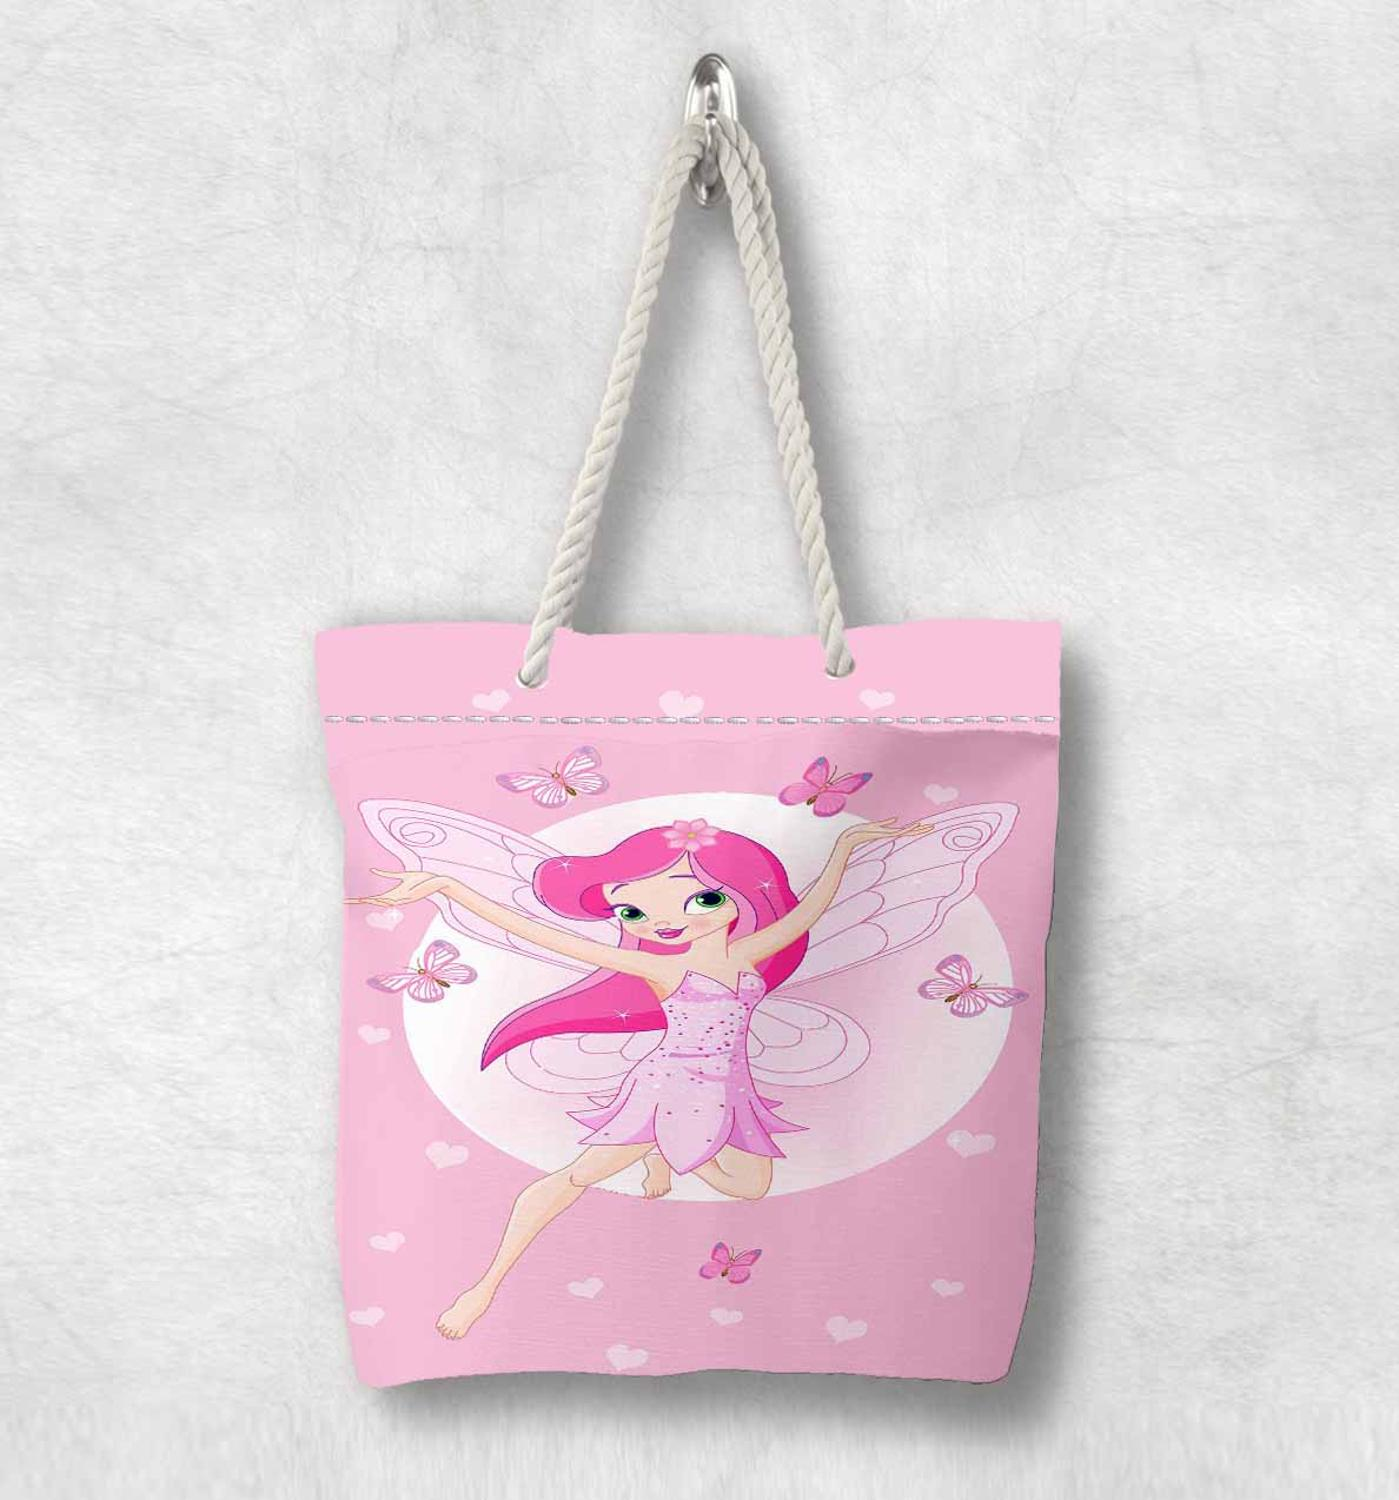 Else Pink White Fairy Girls Butterfly White Rope Handle Canvas Bag  Cartoon Print Zippered Tote Bag Shoulder Bag